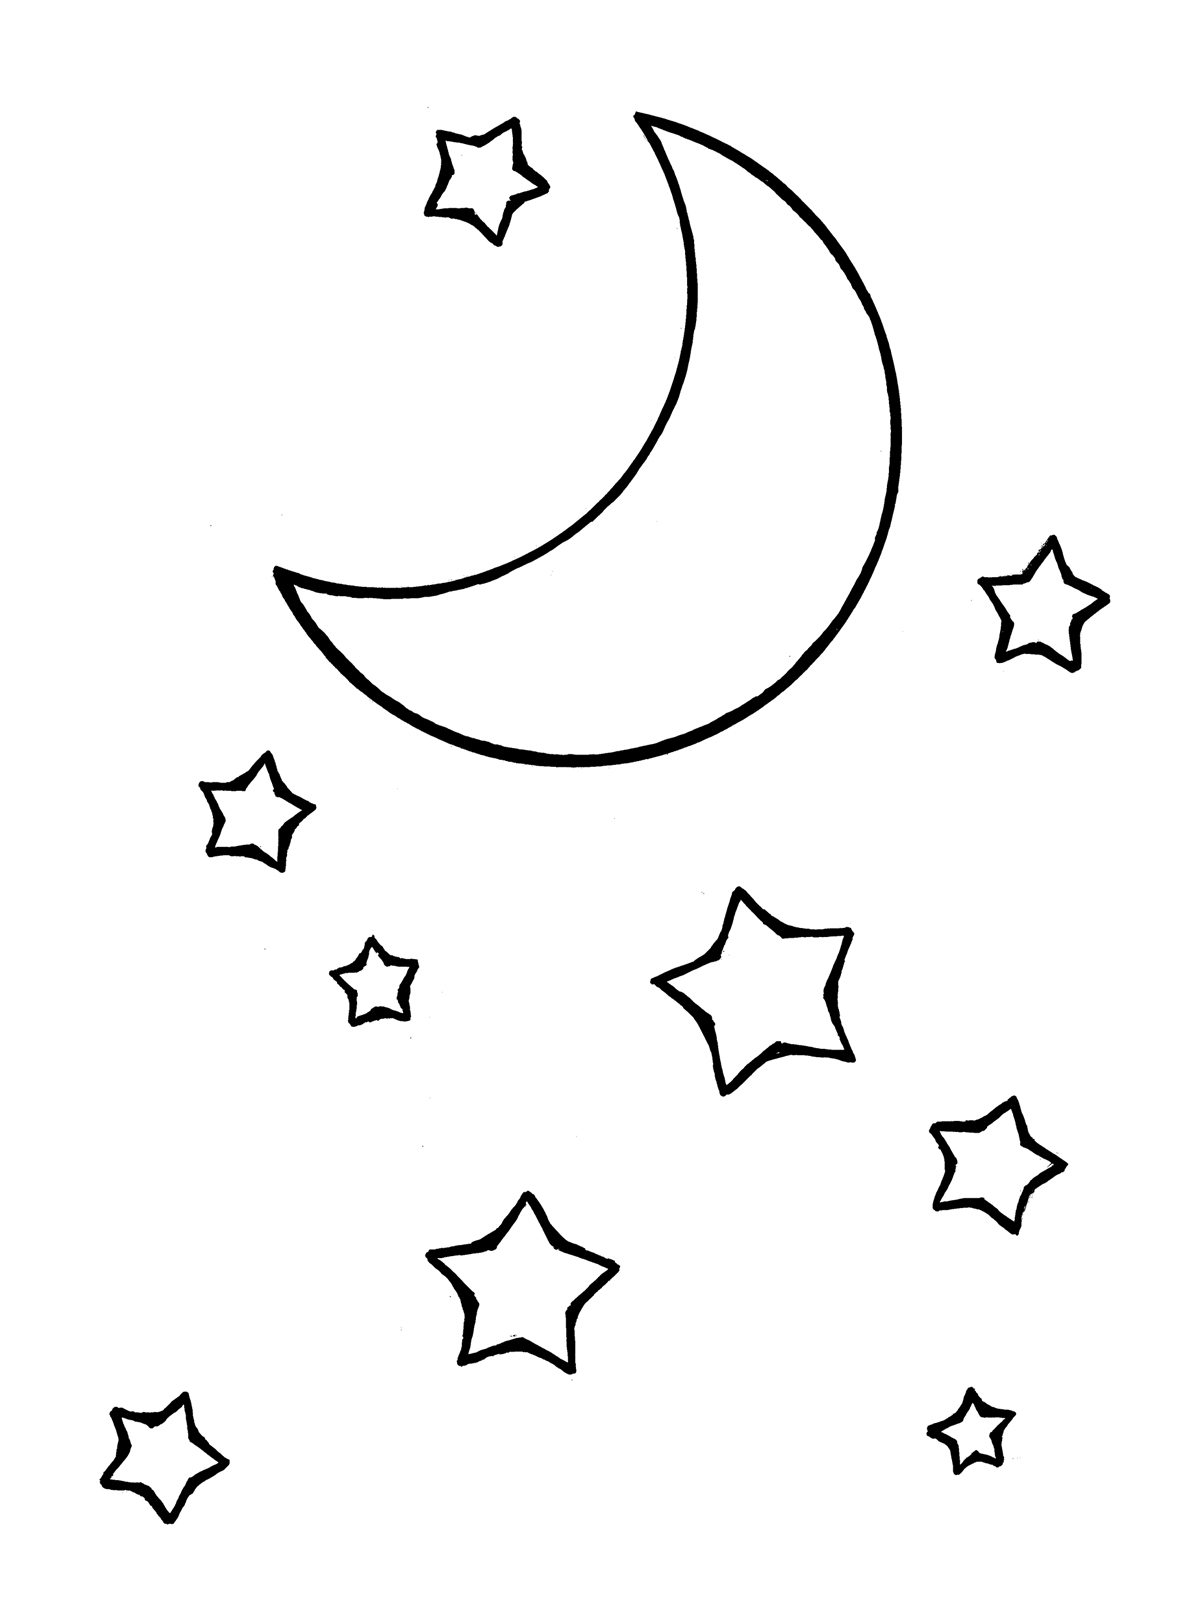 Line Drawing Moon : Crescent moon line drawing pictures to pin on pinterest